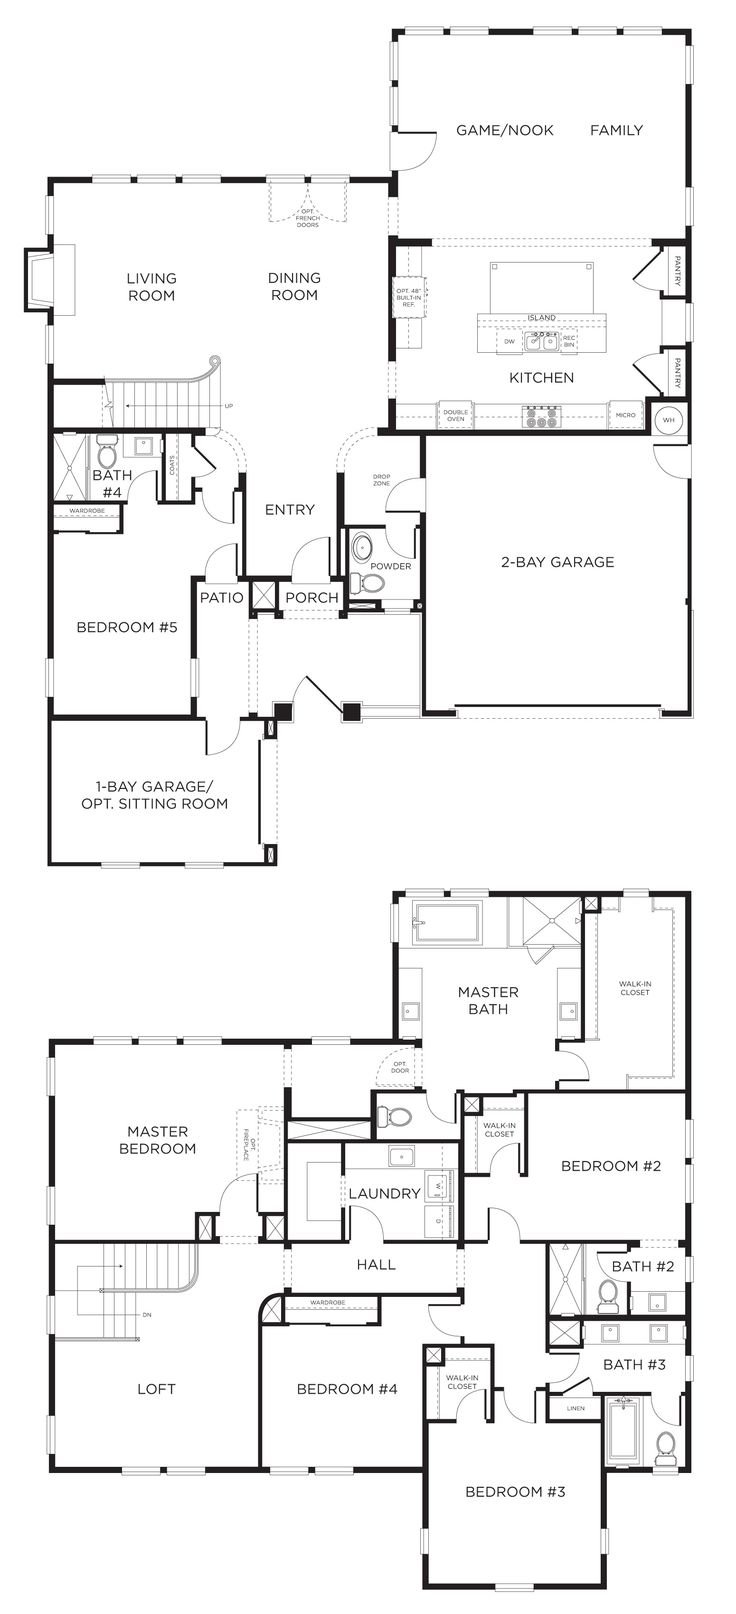 33 best fabulous floorplans images on pinterest floor Bedroom plan design